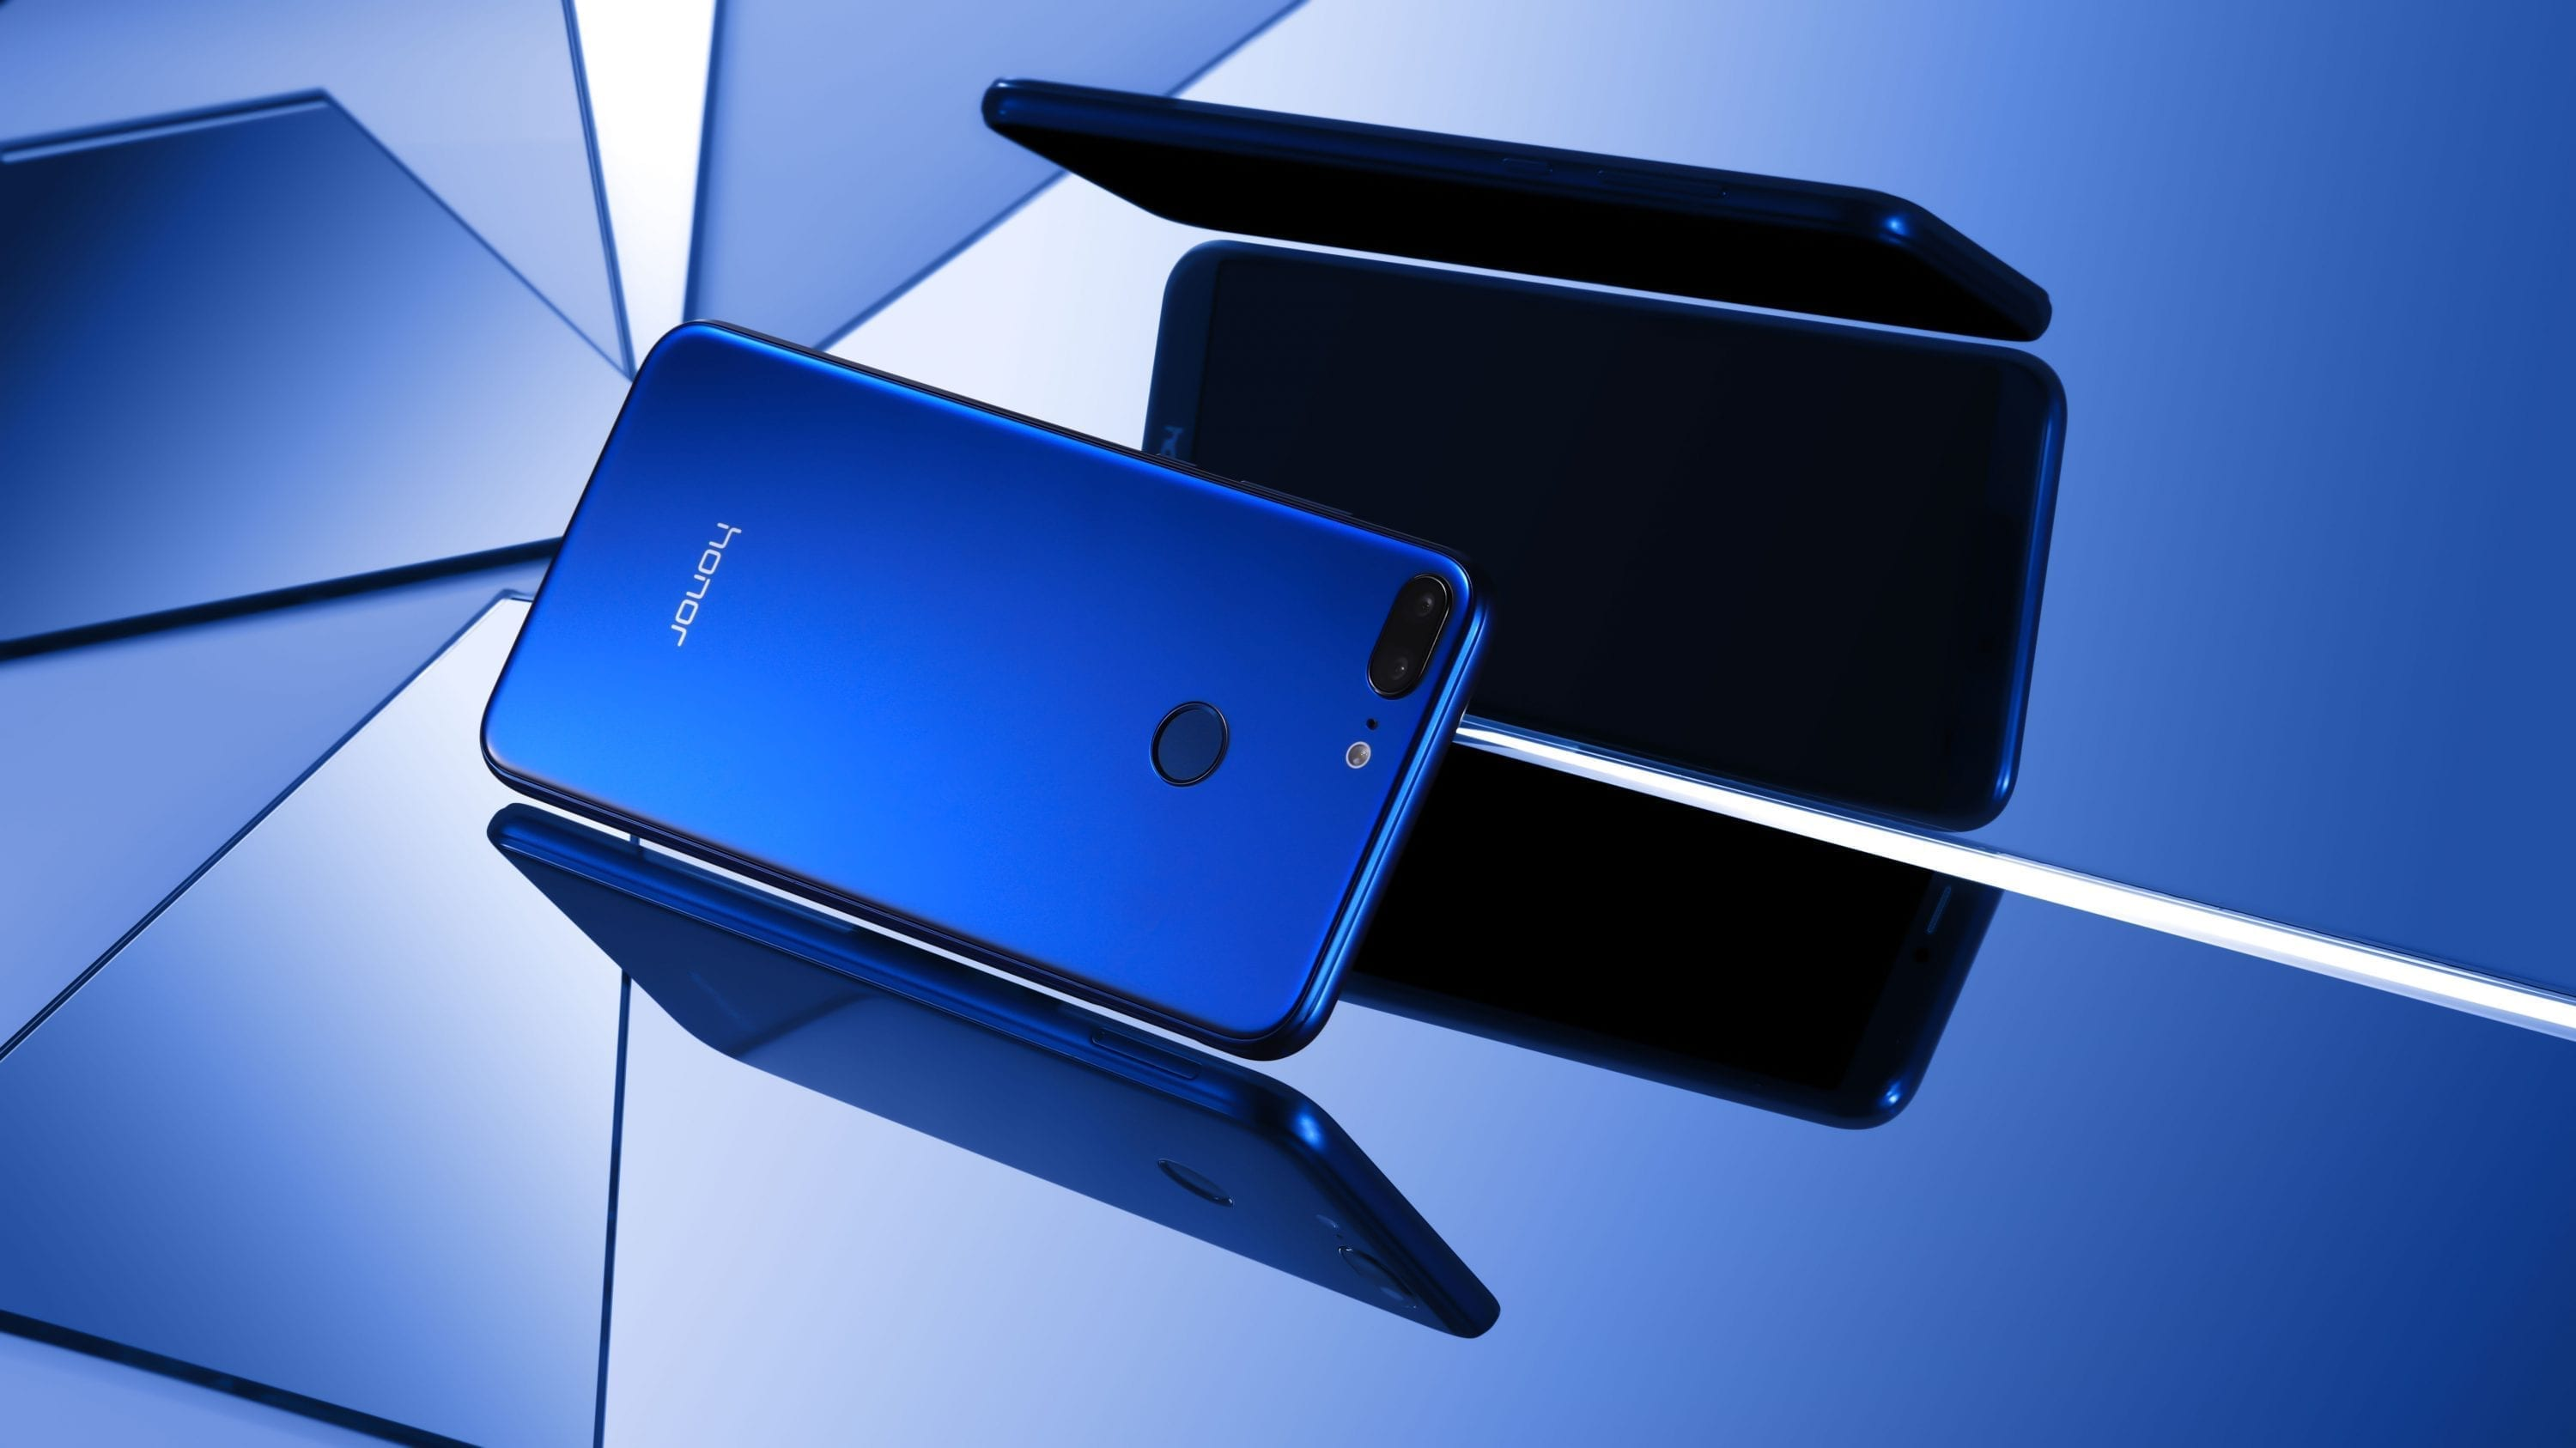 low priced 64a3a 67d06 Honor 9 Lite brings four cameras and reduced bezels to frugal ...